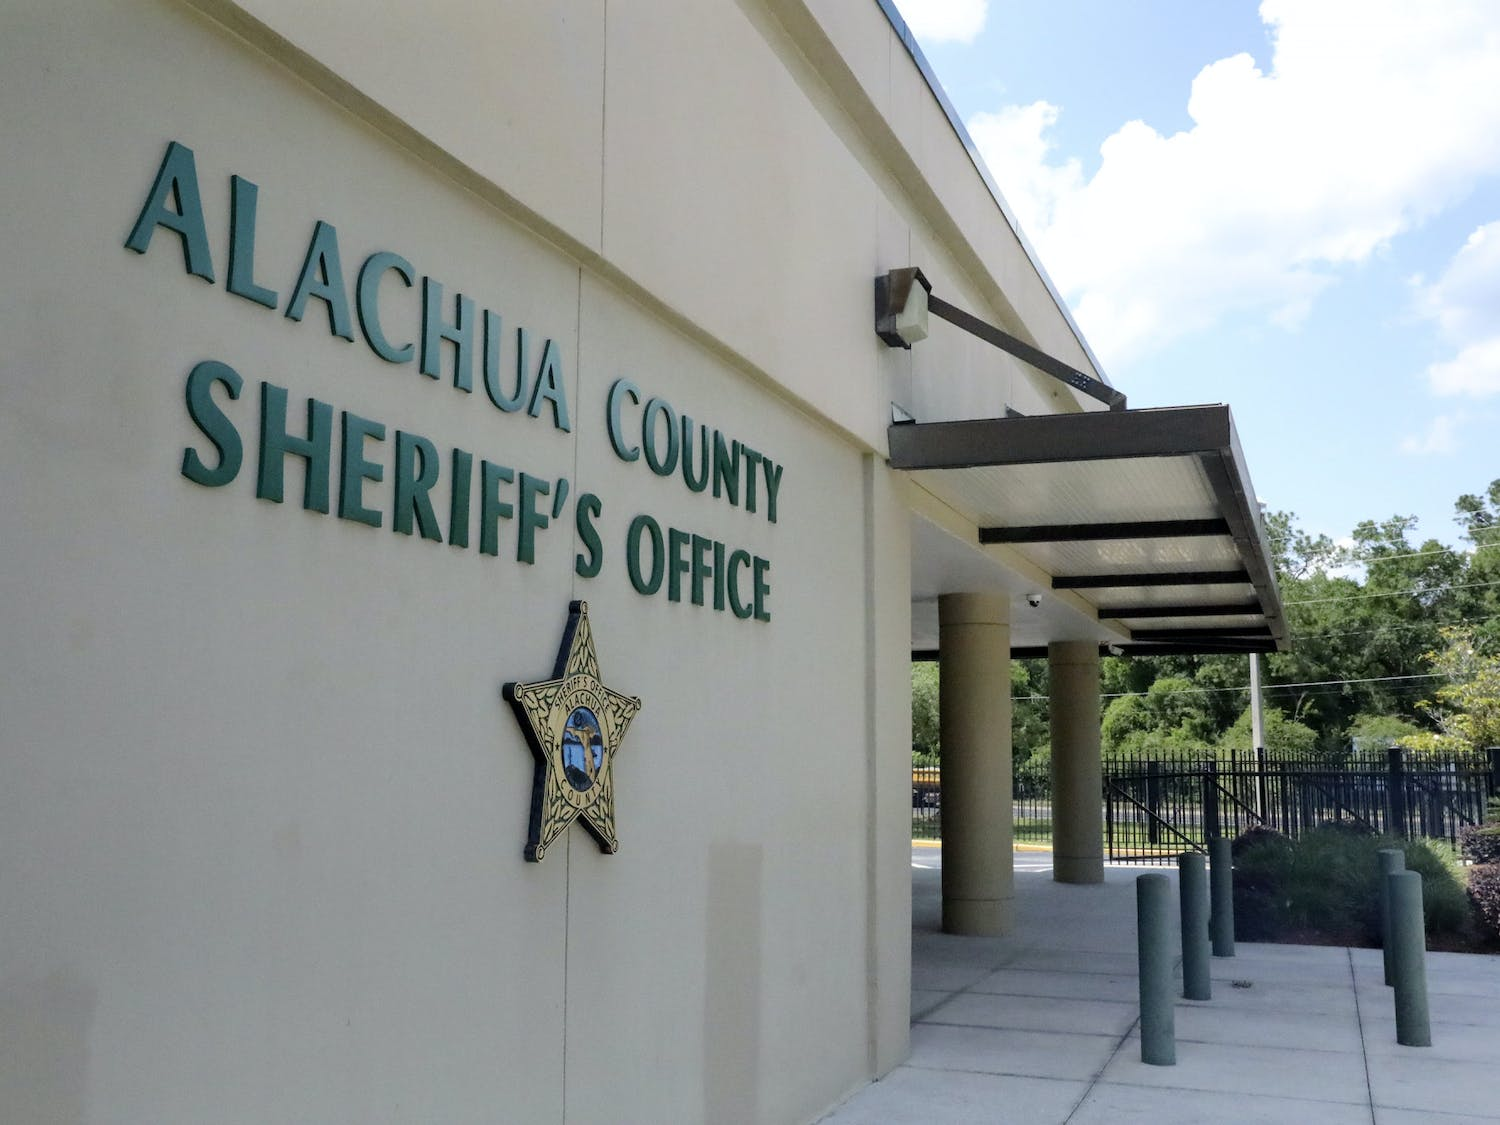 The Alachua County Sheriff's Office on Southeast Hawthorn Road on Monday, May 3, 2021. (Photo by Mingmei Li)